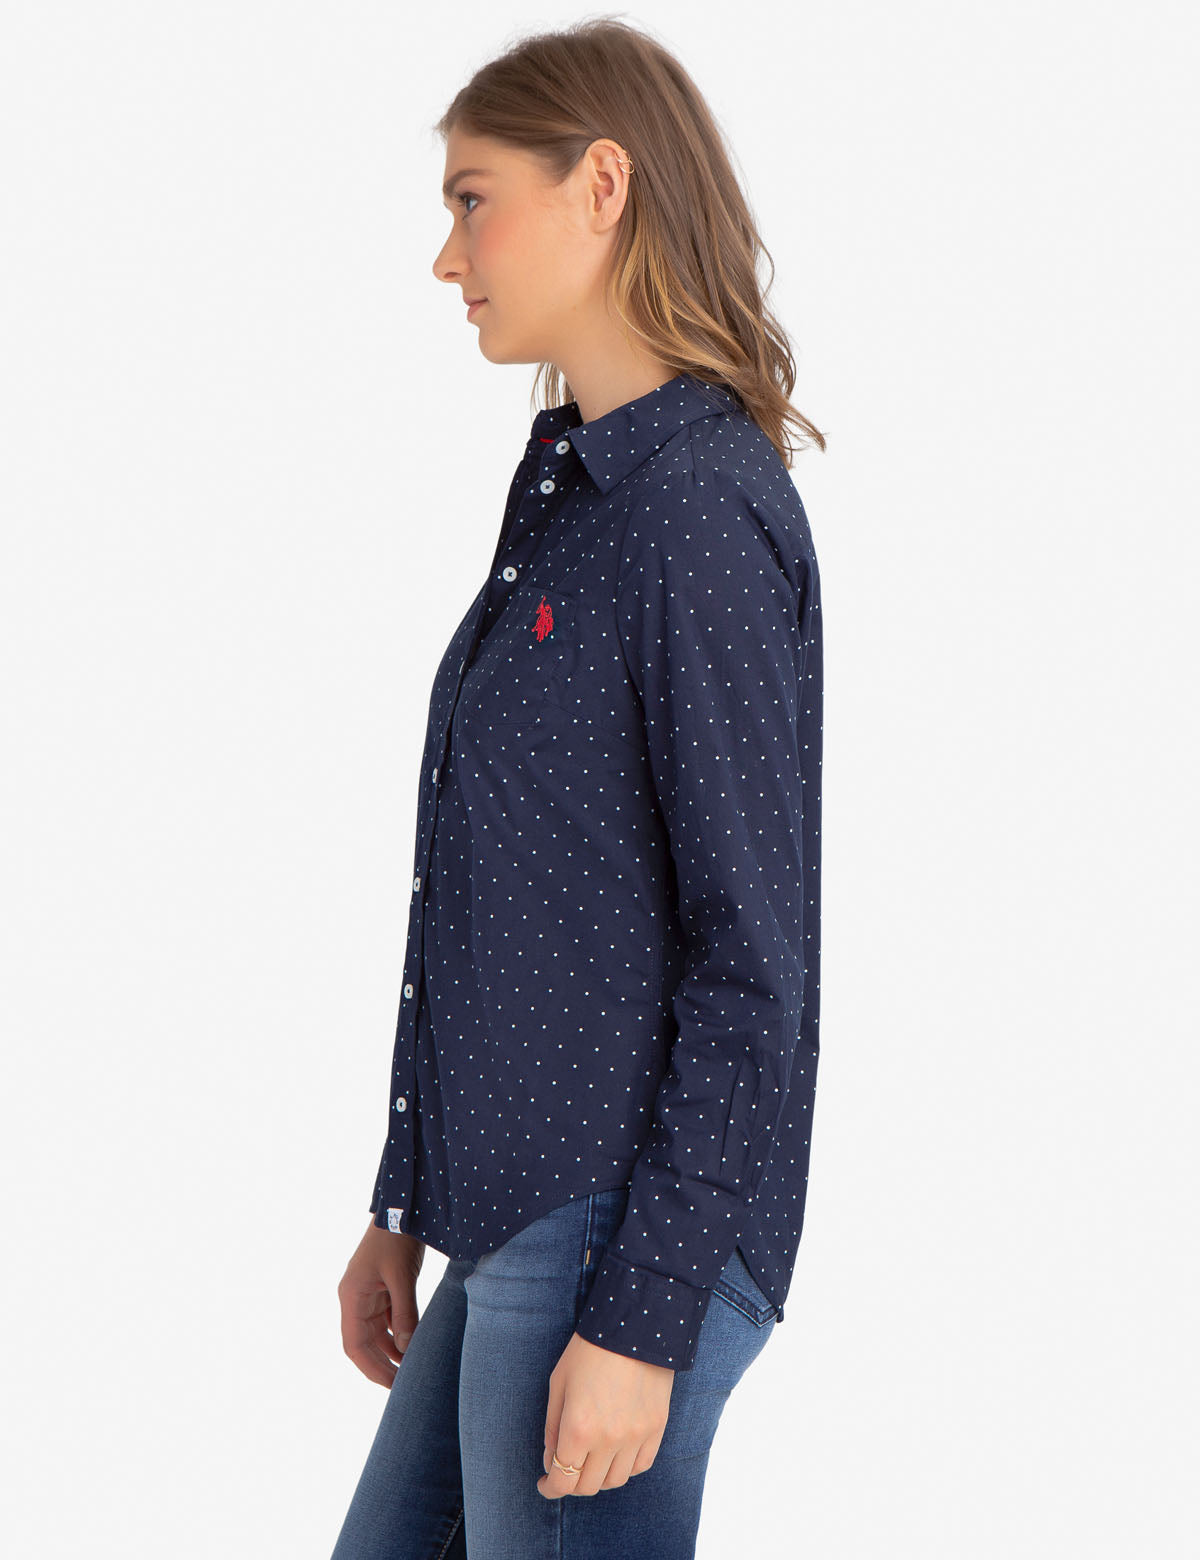 DOT STRETCH POPLIN SHIRT - U.S. Polo Assn.